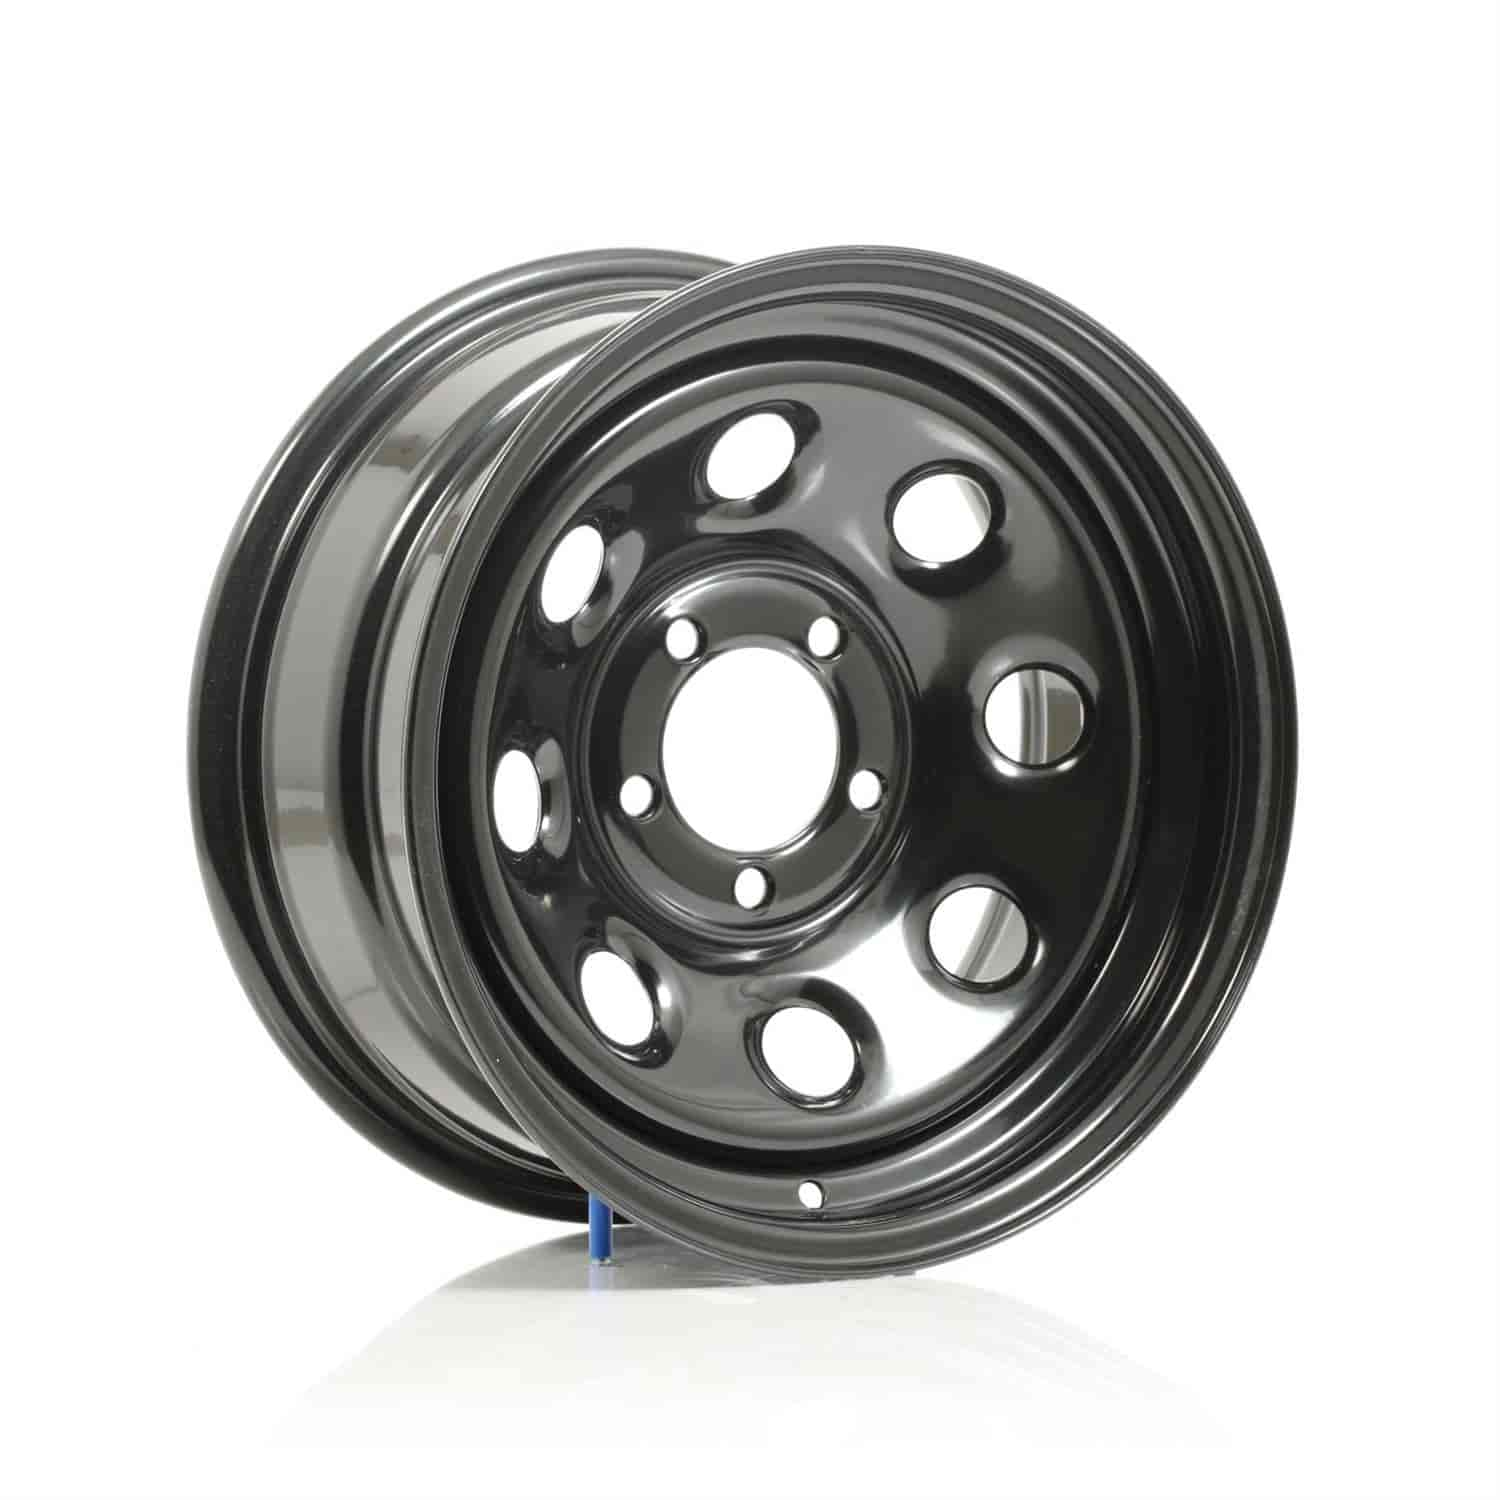 Cragar 3975212 - Cragar Black Soft 8 Wheels